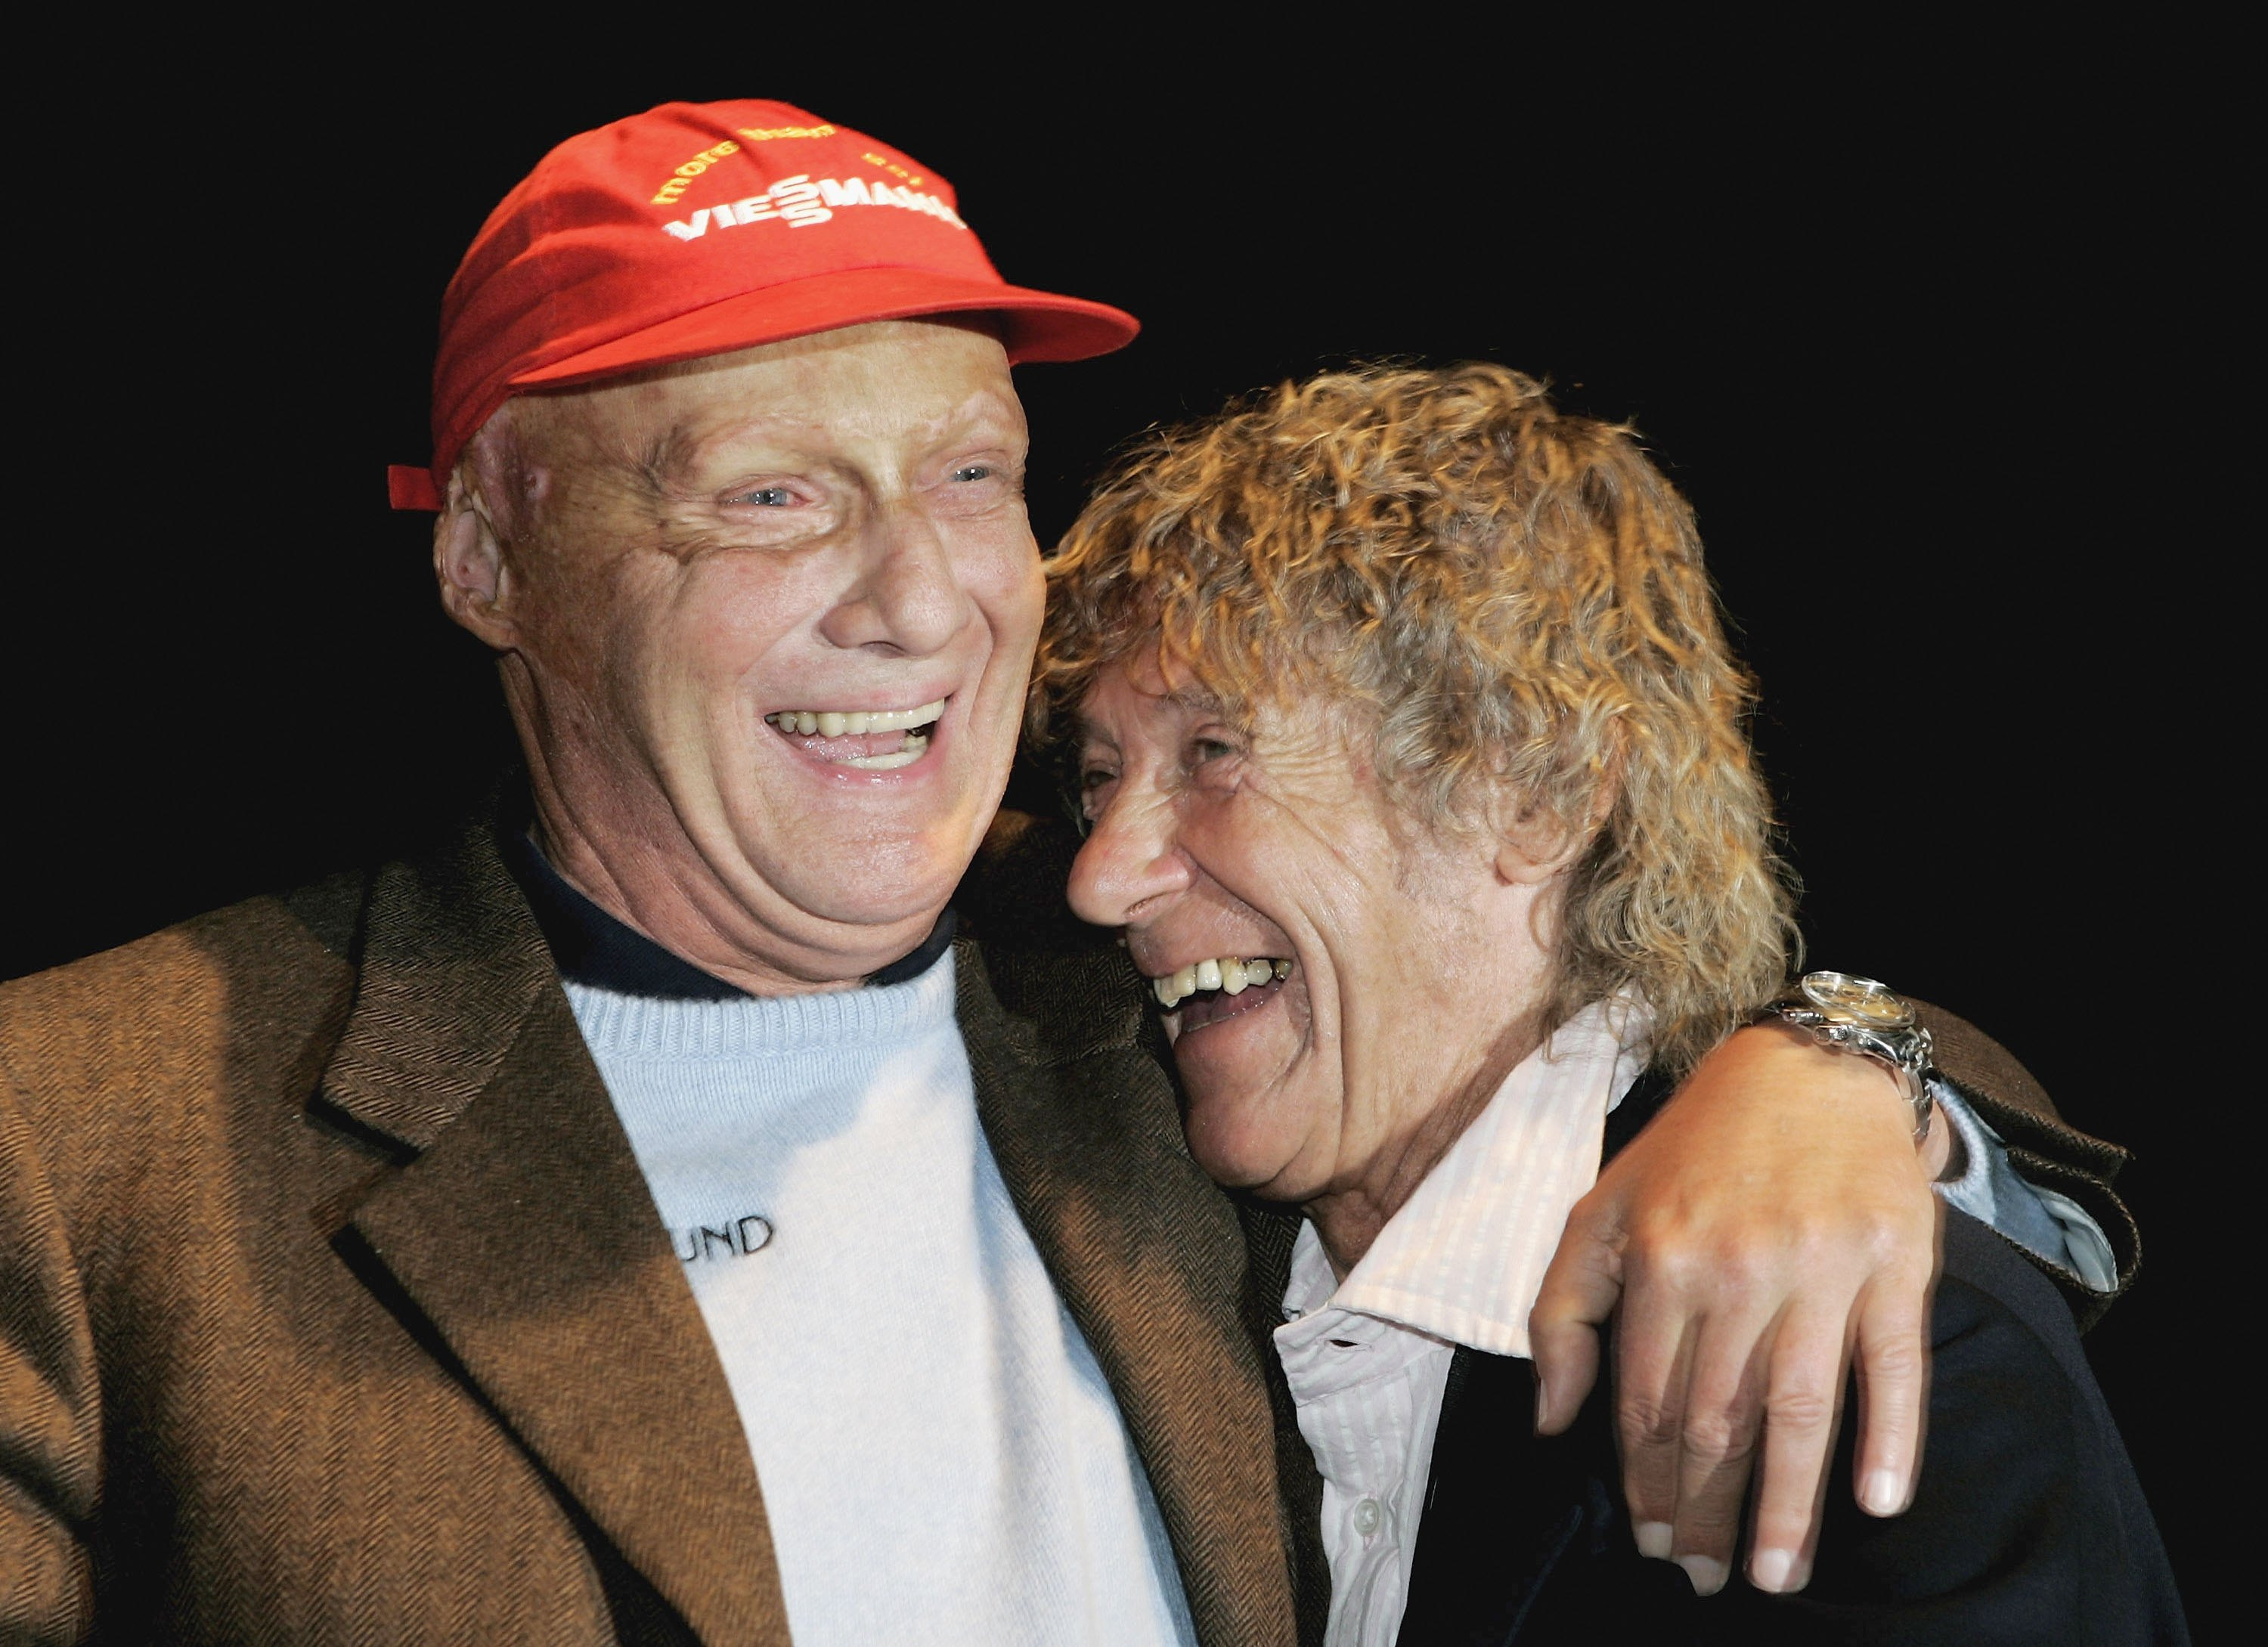 Former Formula One drivers Niki Lauda (L) and Arturo Mezario laugh during the 2006 Motorsport Traveling Charity-Gala